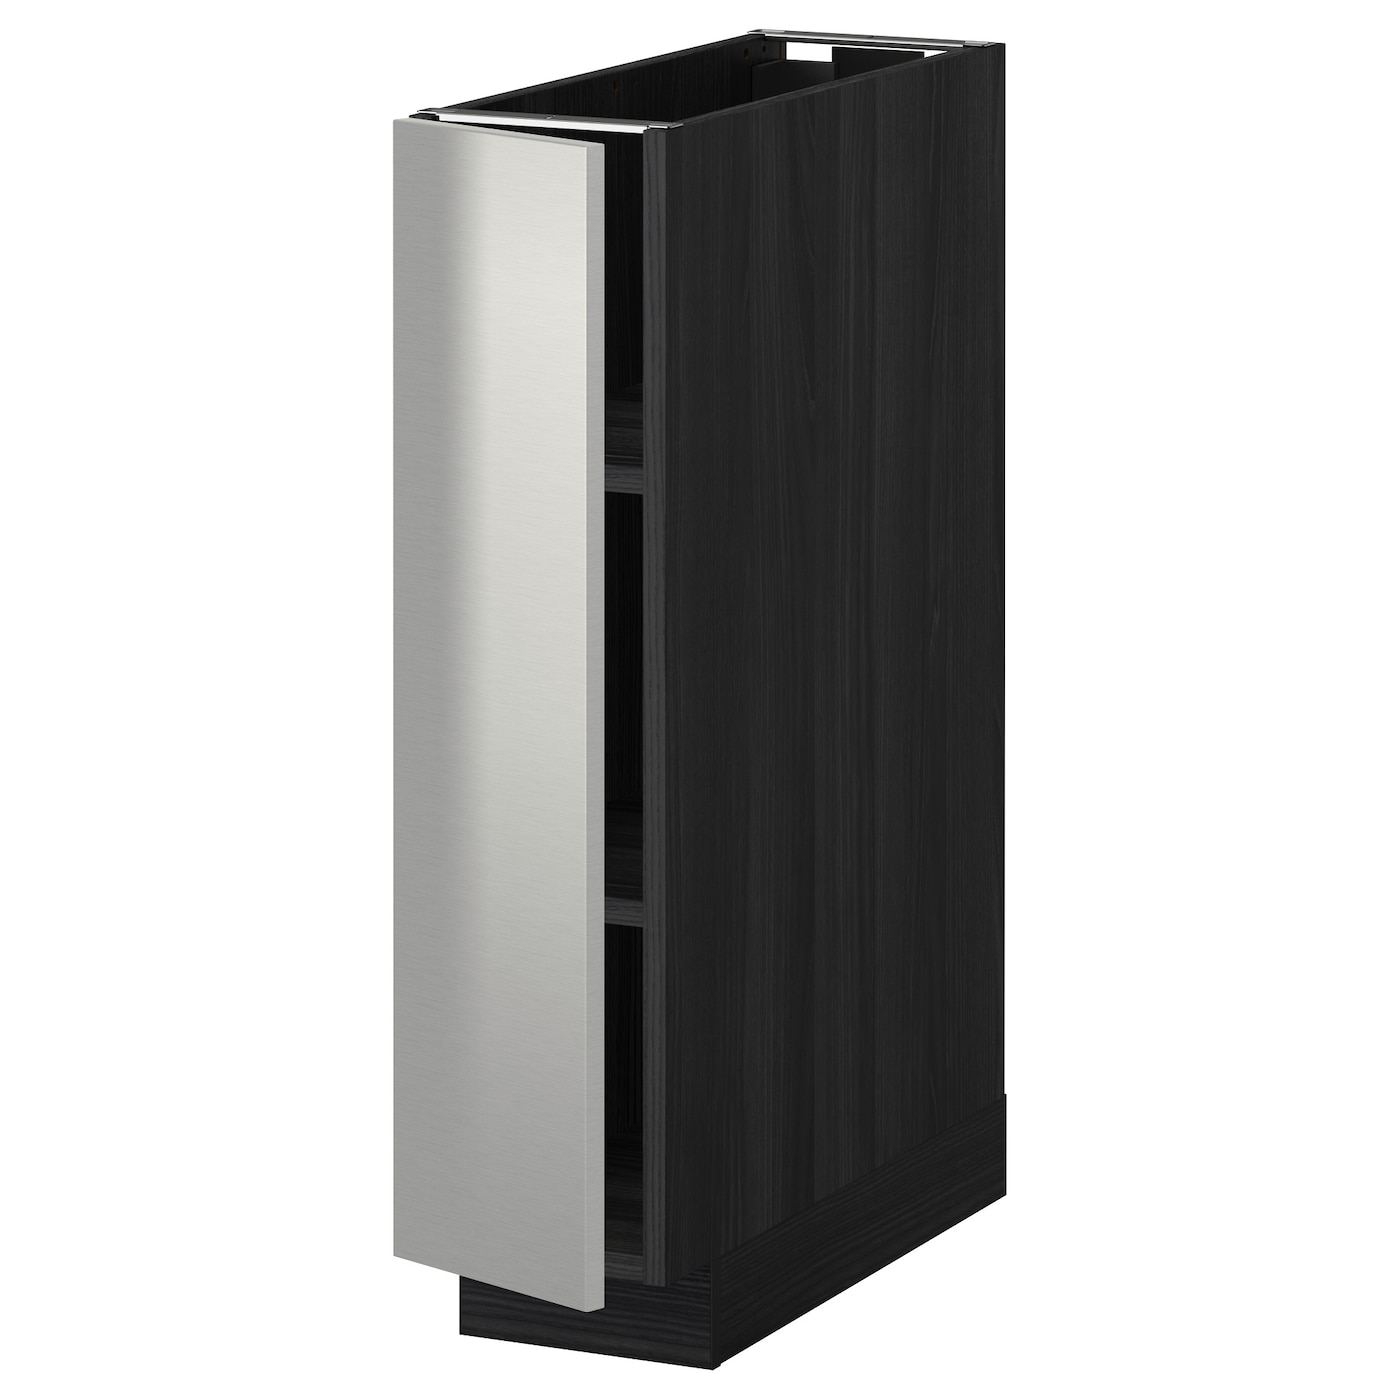 metod base cabinet with shelves black grevsta stainless. Black Bedroom Furniture Sets. Home Design Ideas